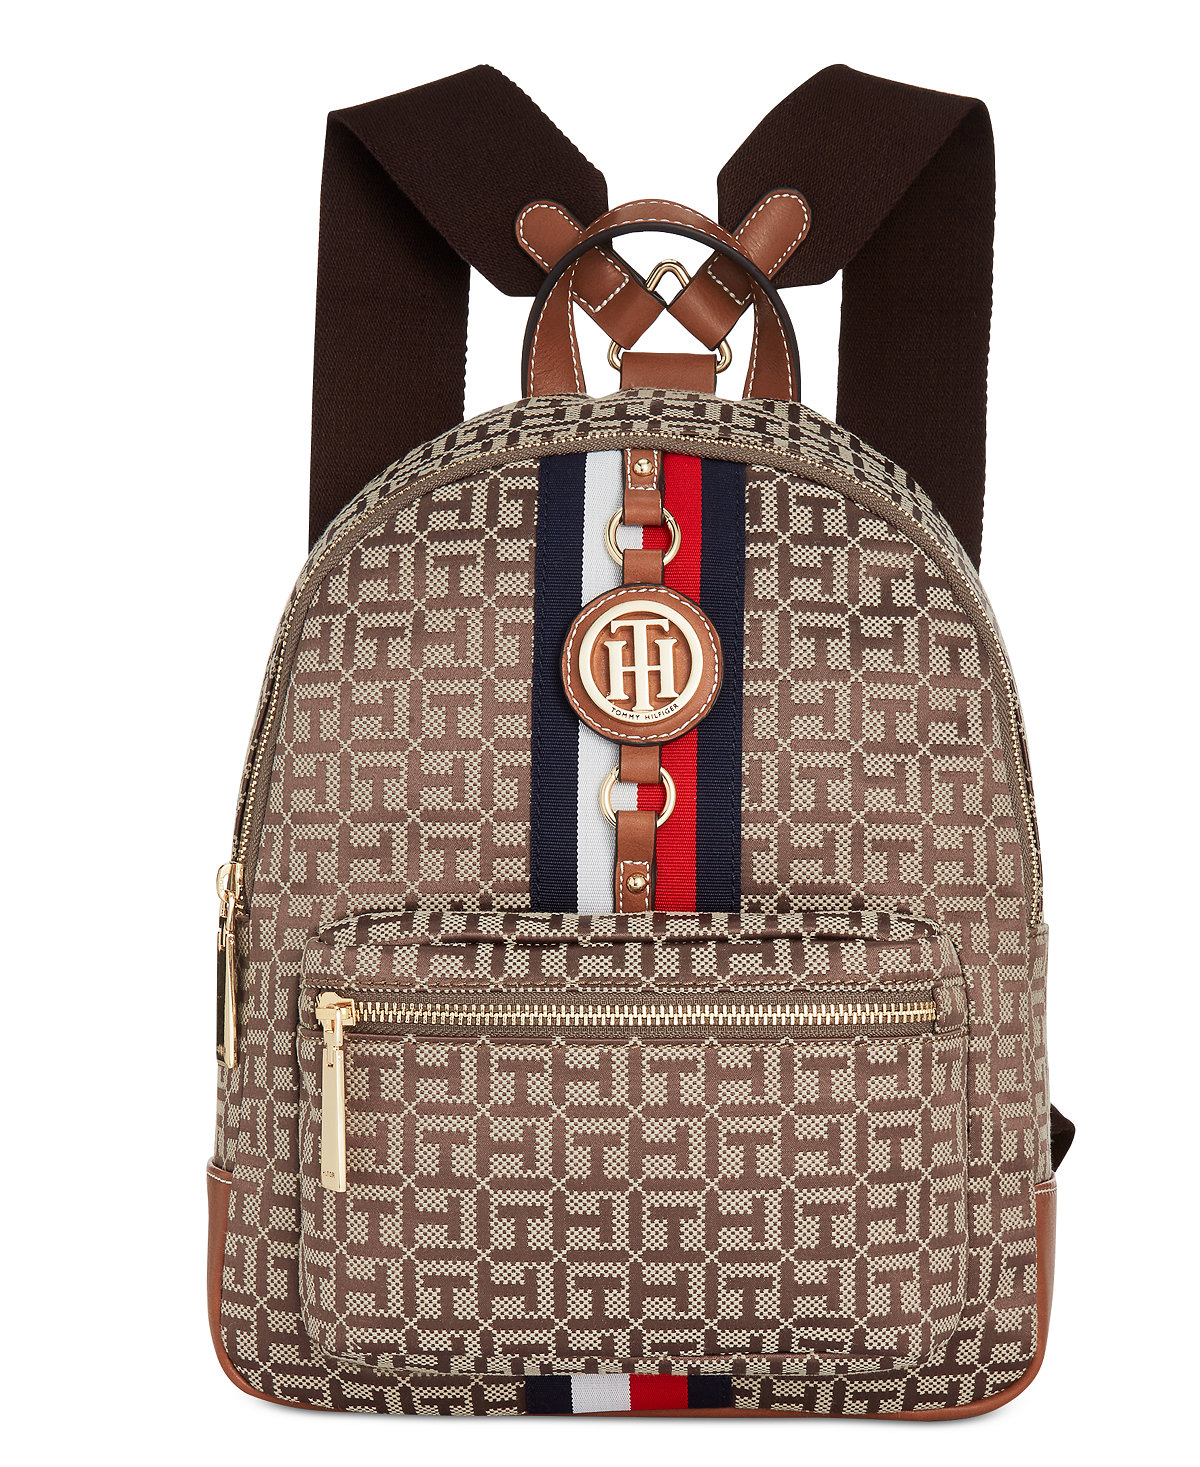 3be0478f6f5 Tommy Hilfiger Jaden Monogram Backpack at Macy s (now  88.50)